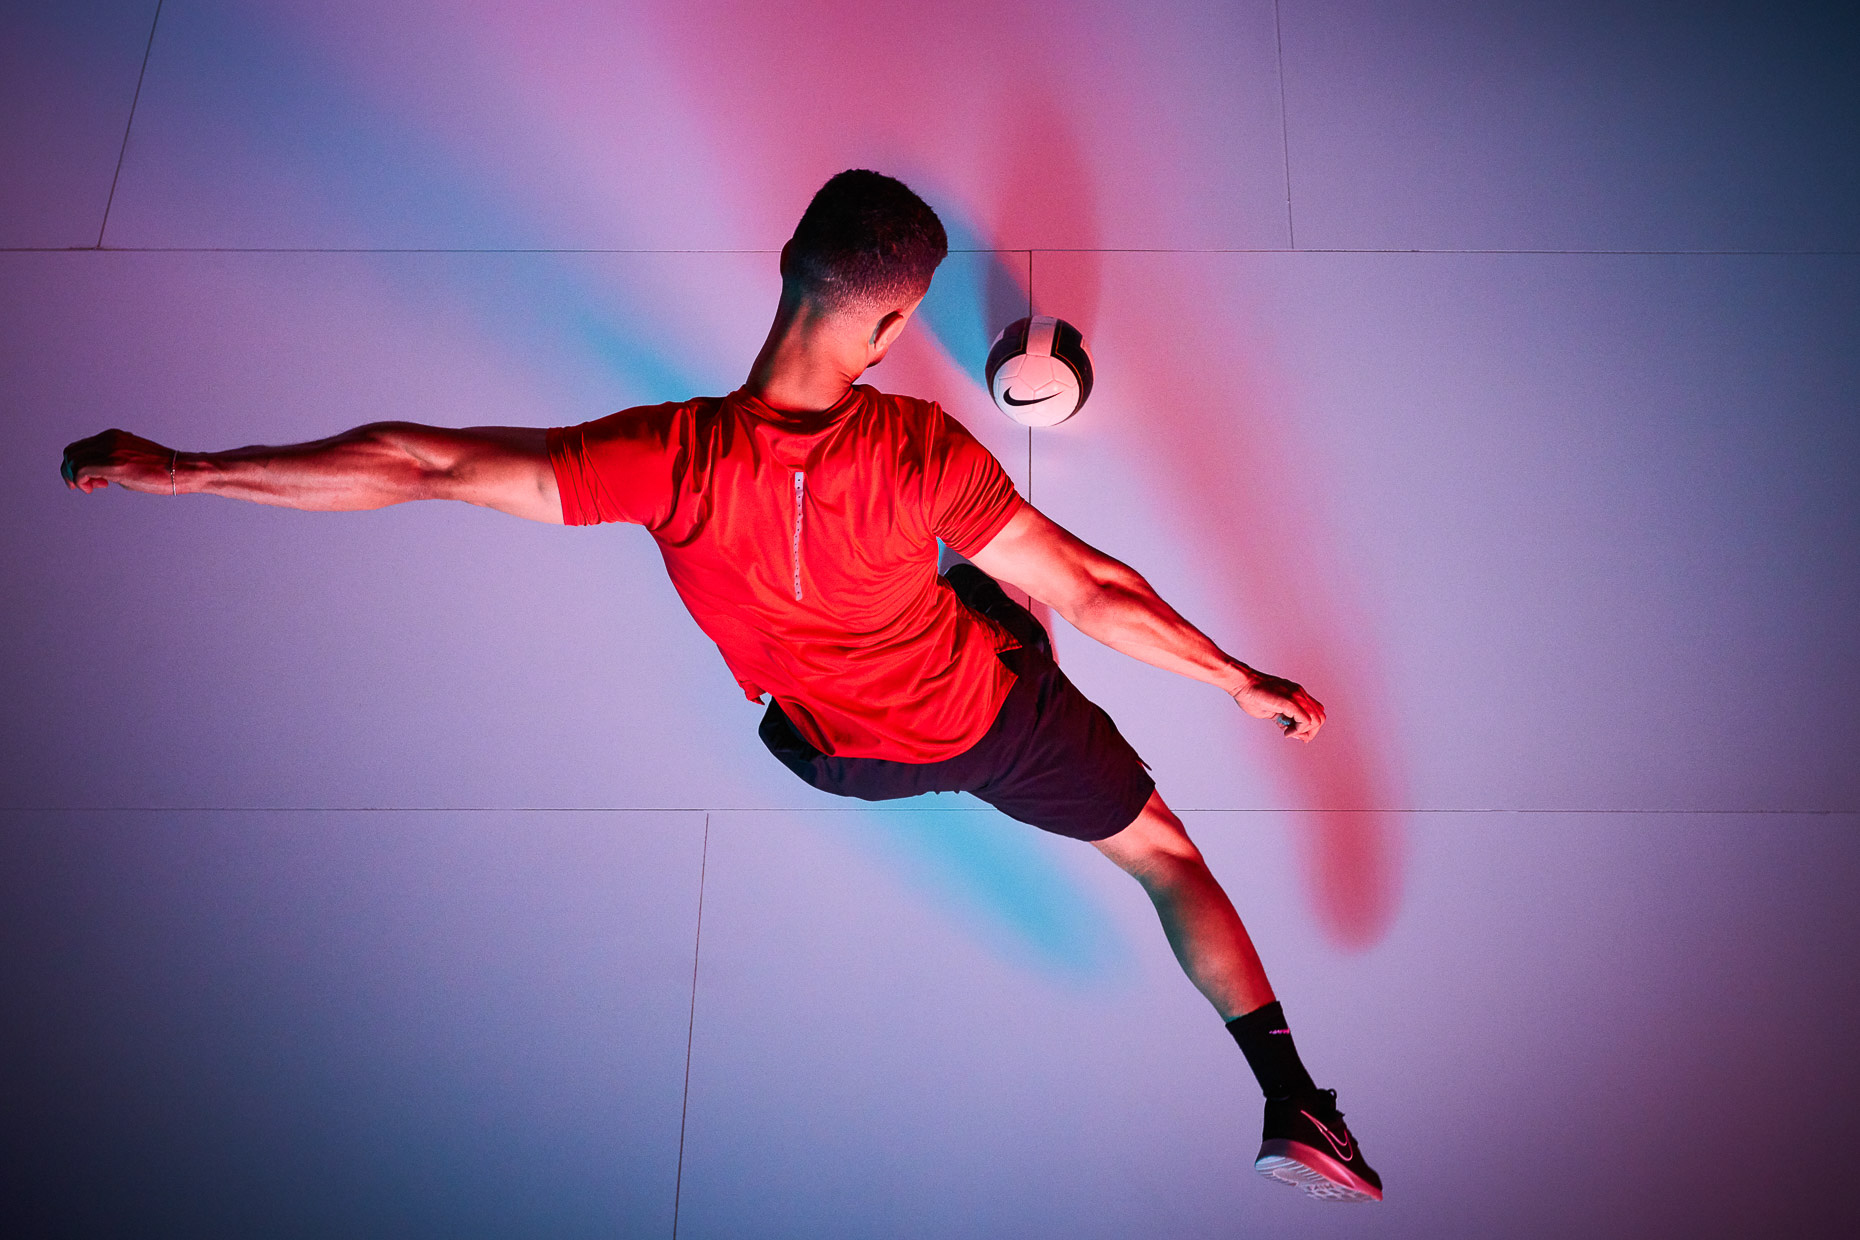 Nike Soccer futbol nike with Saif Alrikabi kicking the ball and shot from above with colorful blue and red gels by Andy Batt